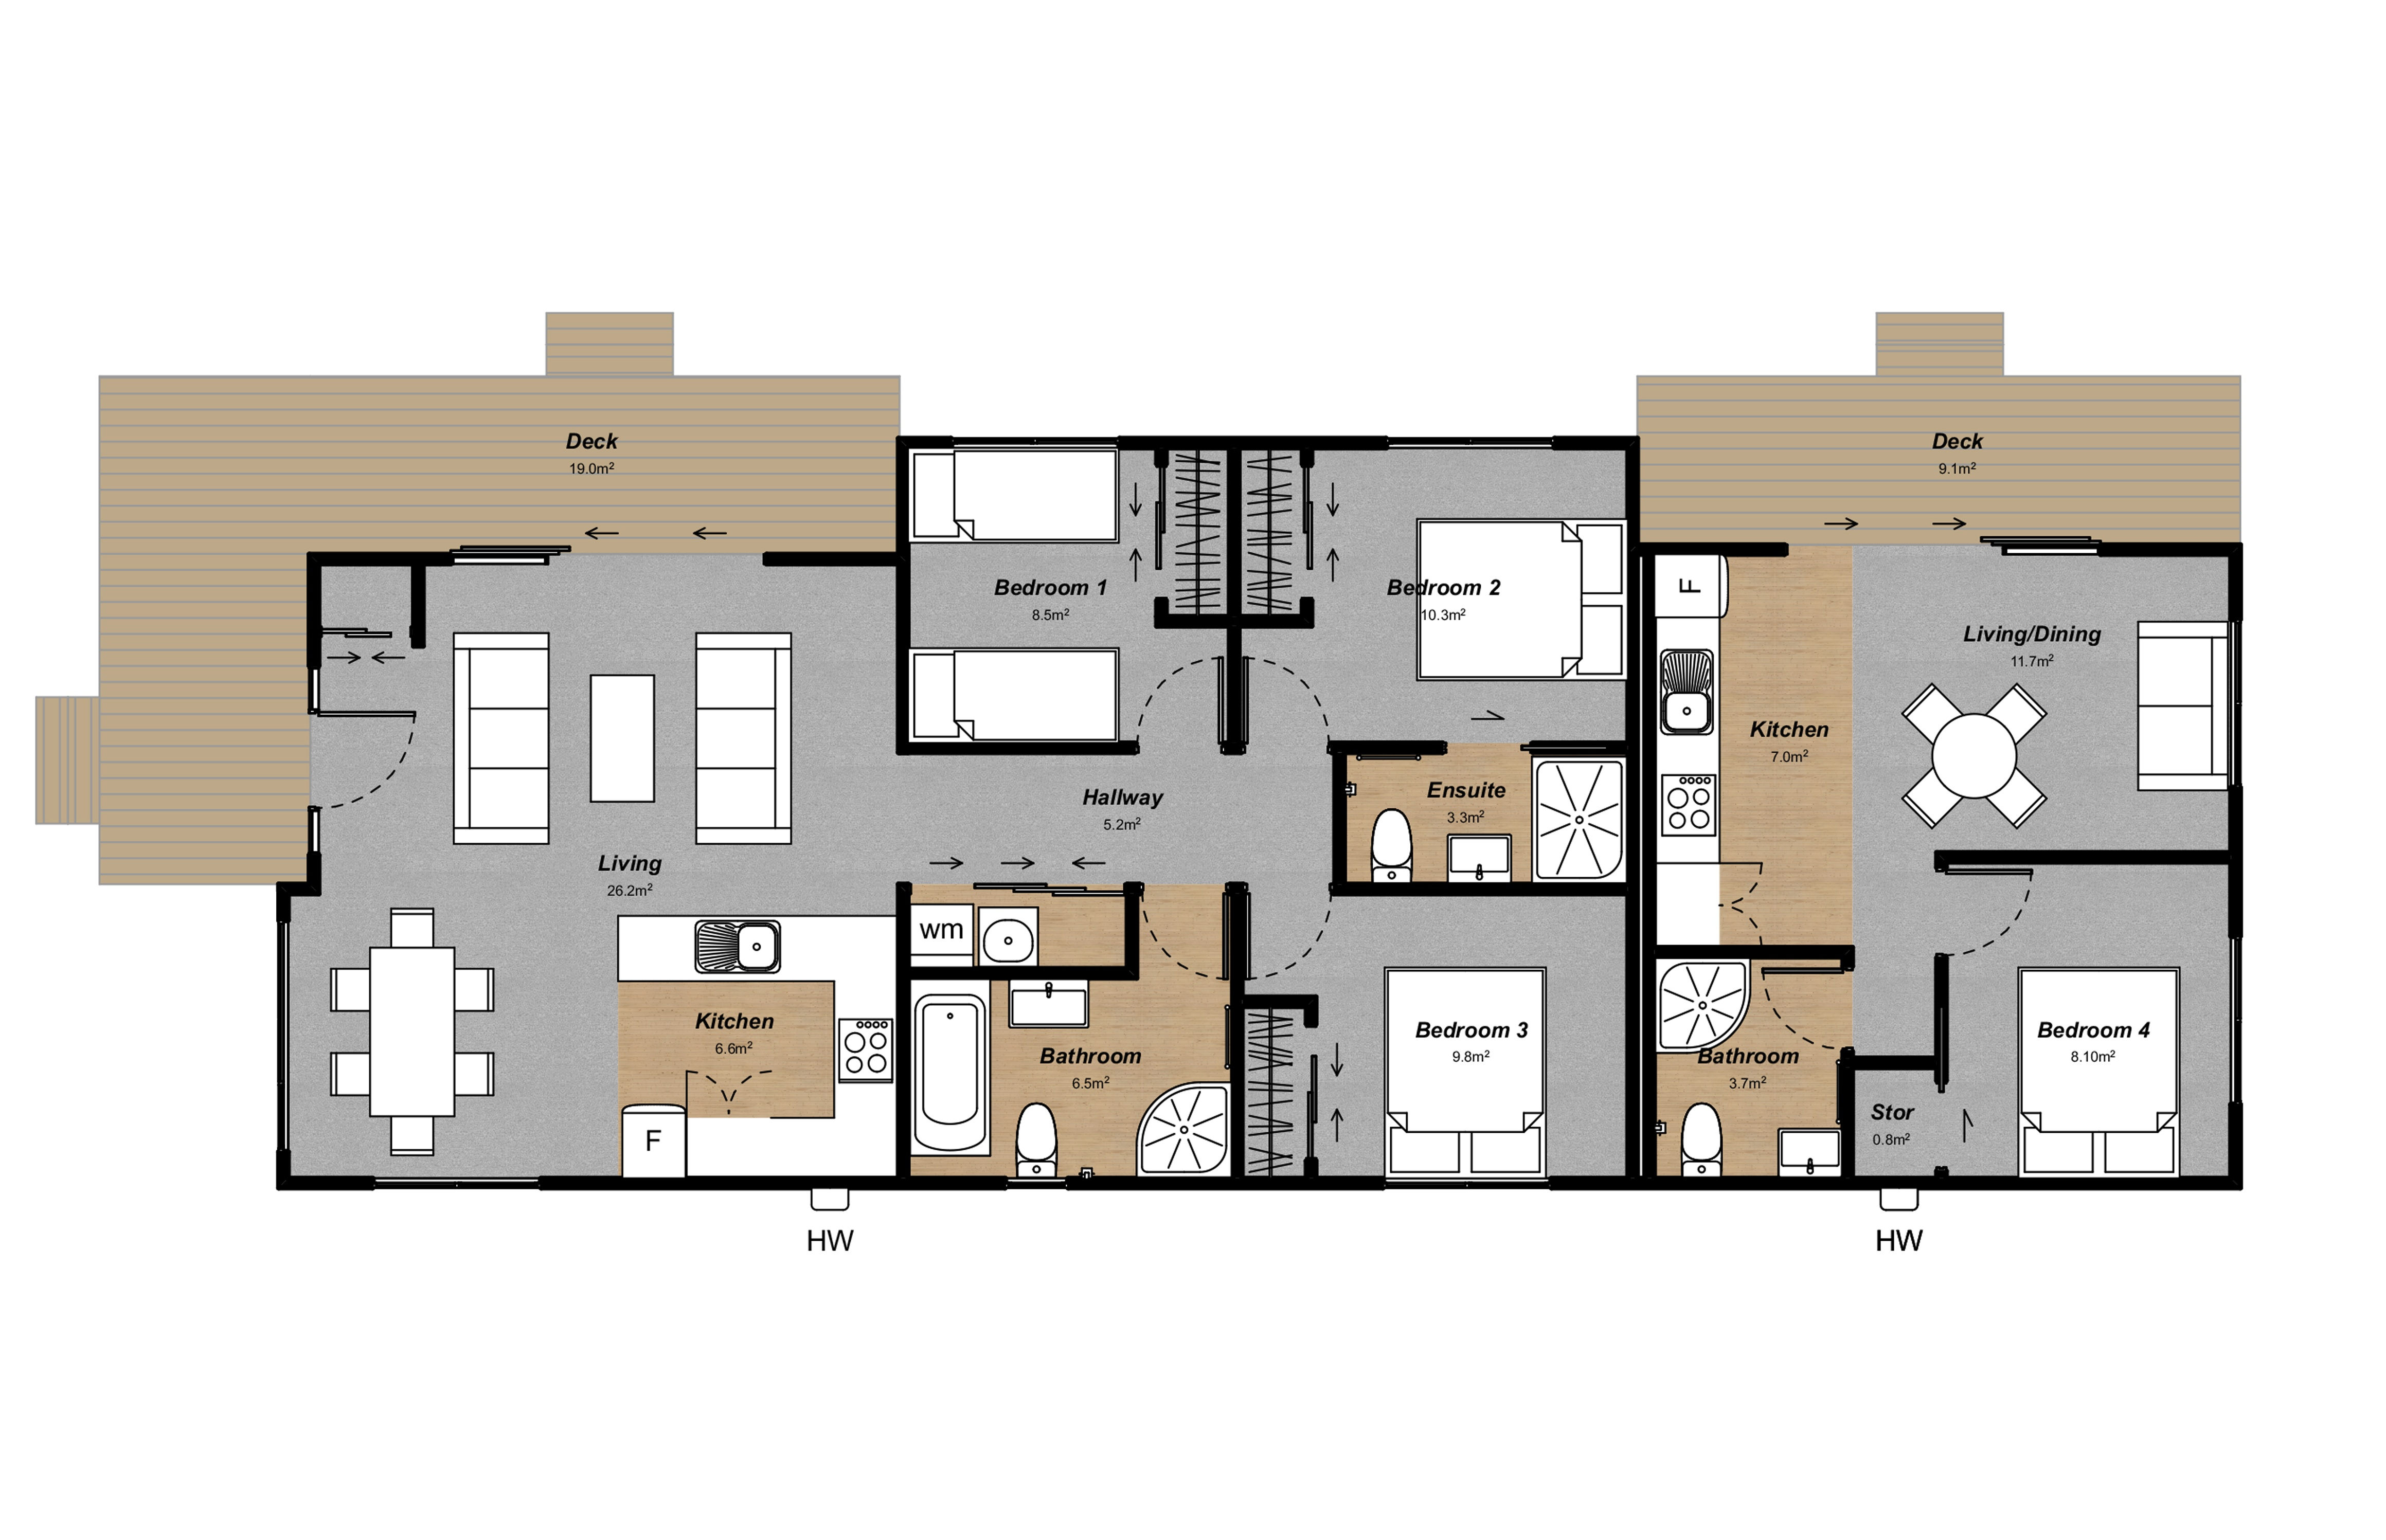 3 bedroom home plan with annex